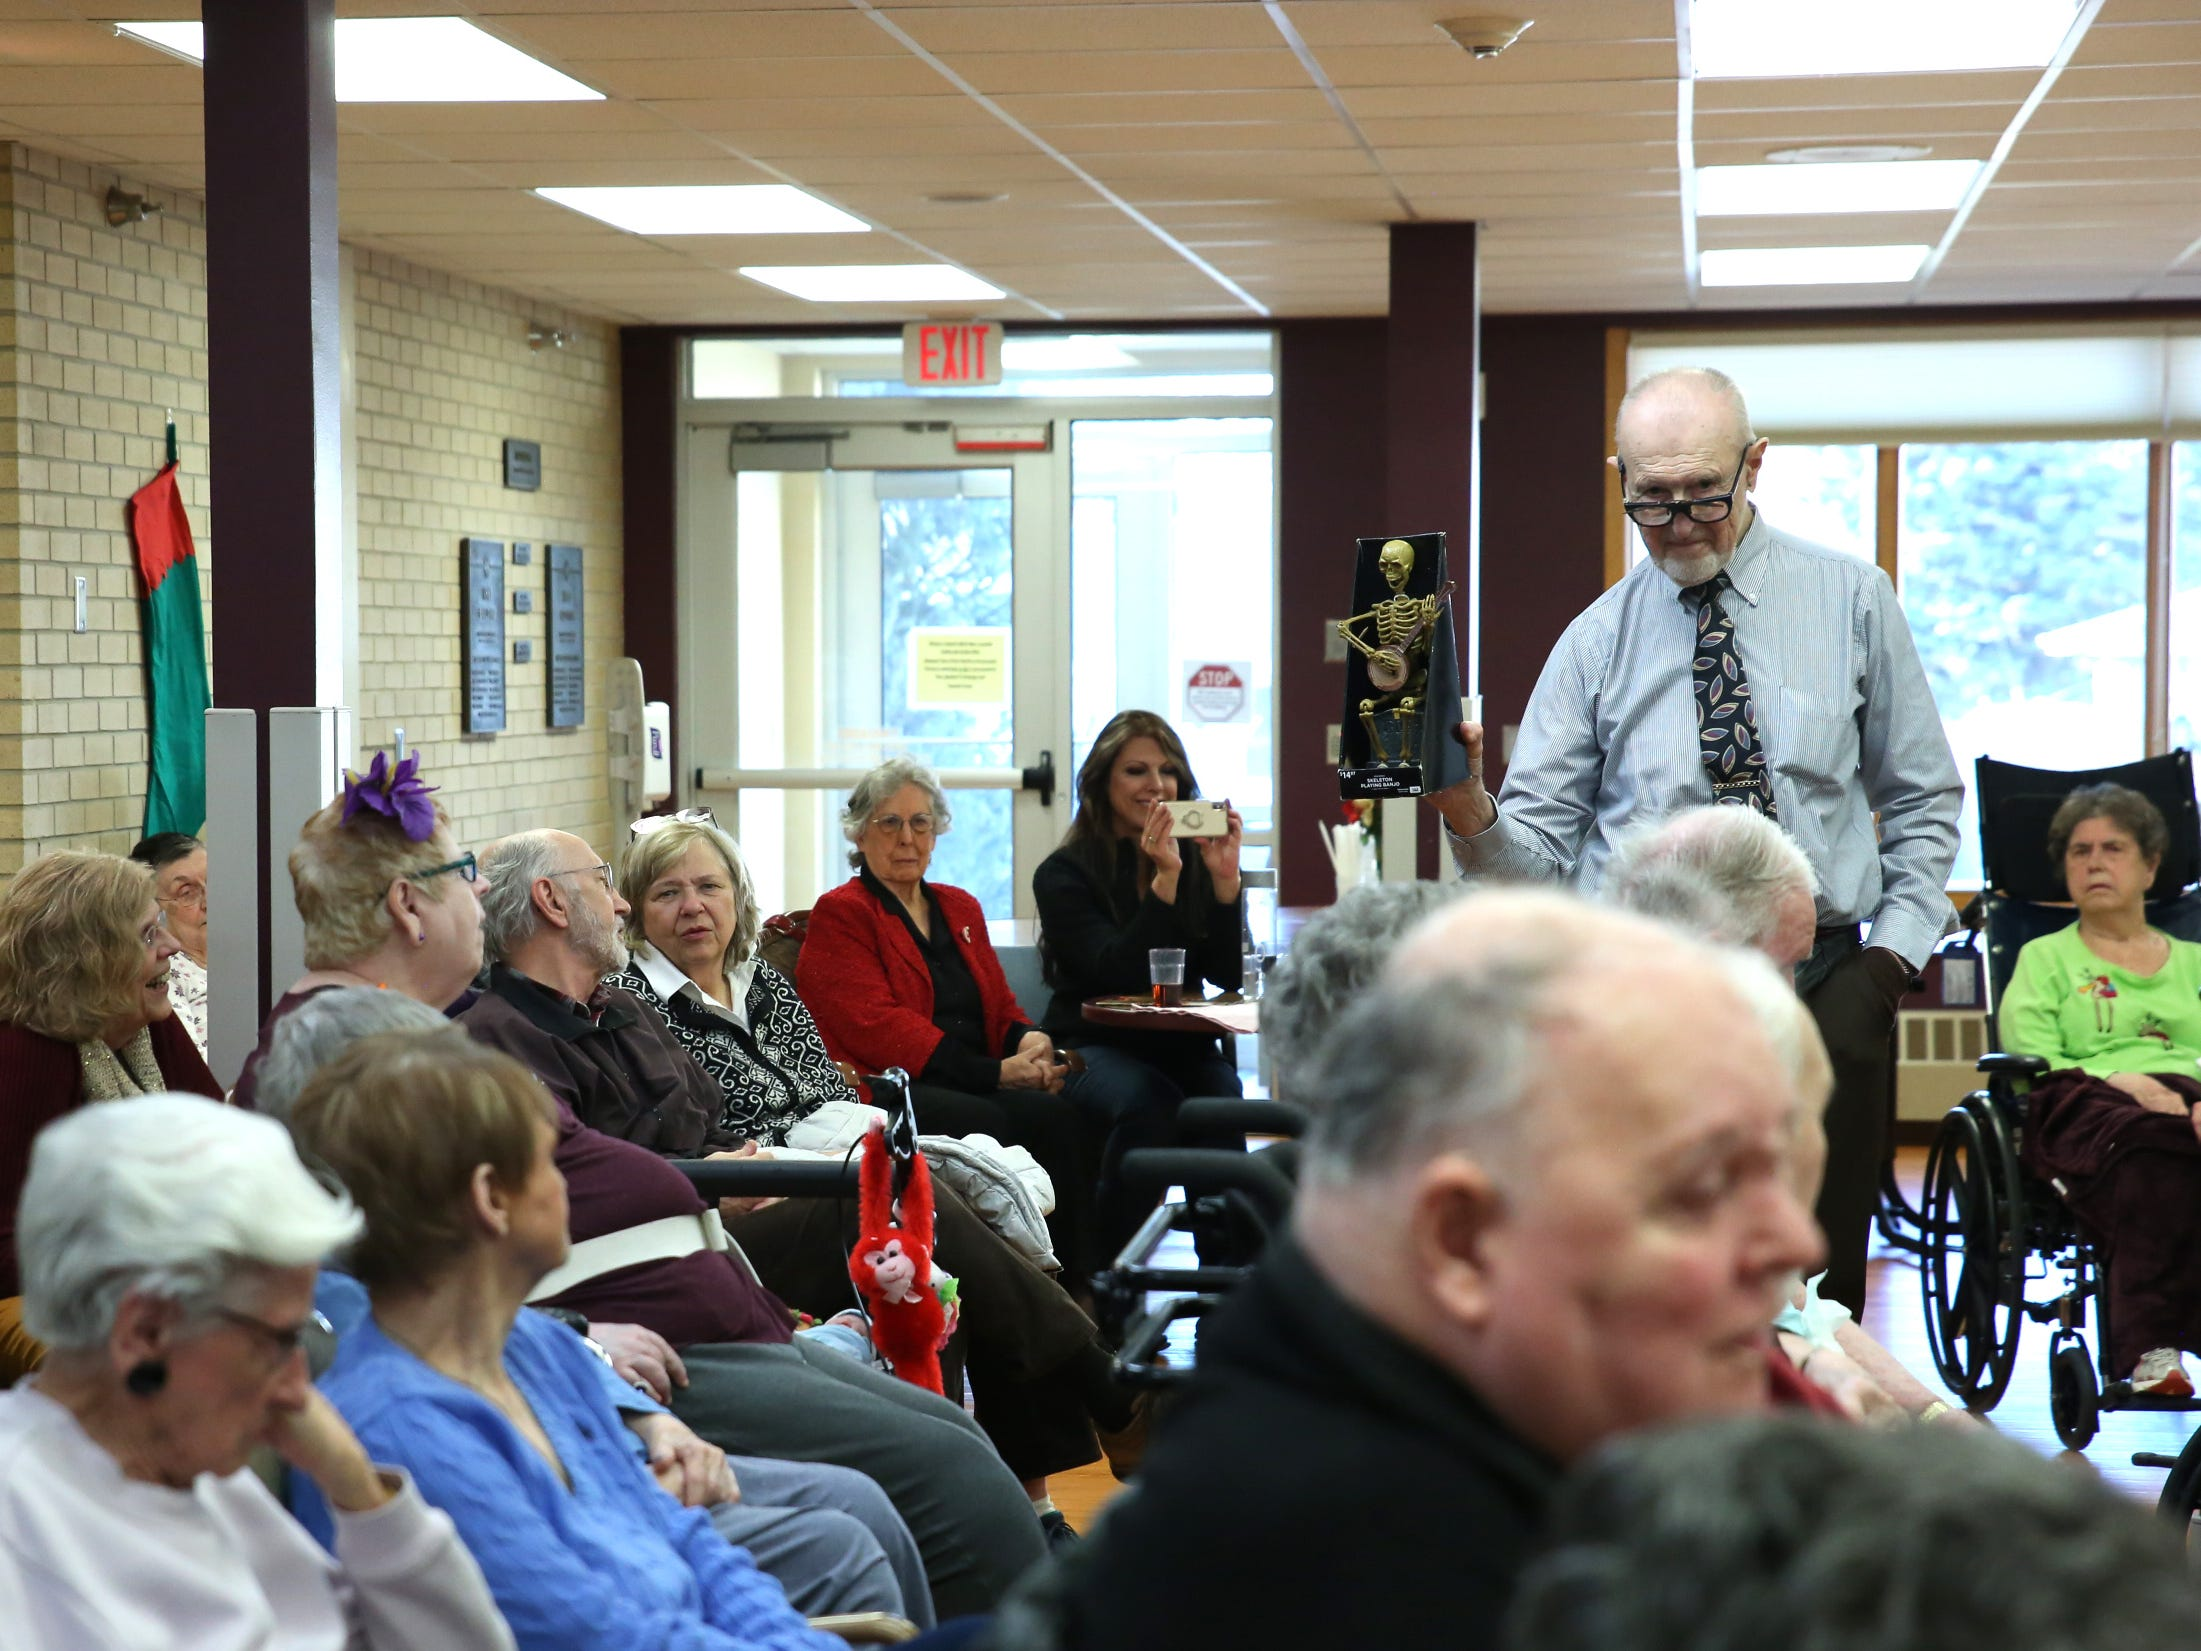 Frank Petereit entertains audience members with a banjo-playing skeleton he bought at Wal-Mart between Dancing Divas performances at Good Samaritan Society-Luther Manor in Sioux Falls, S.D., Friday, Dec. 14, 2018.